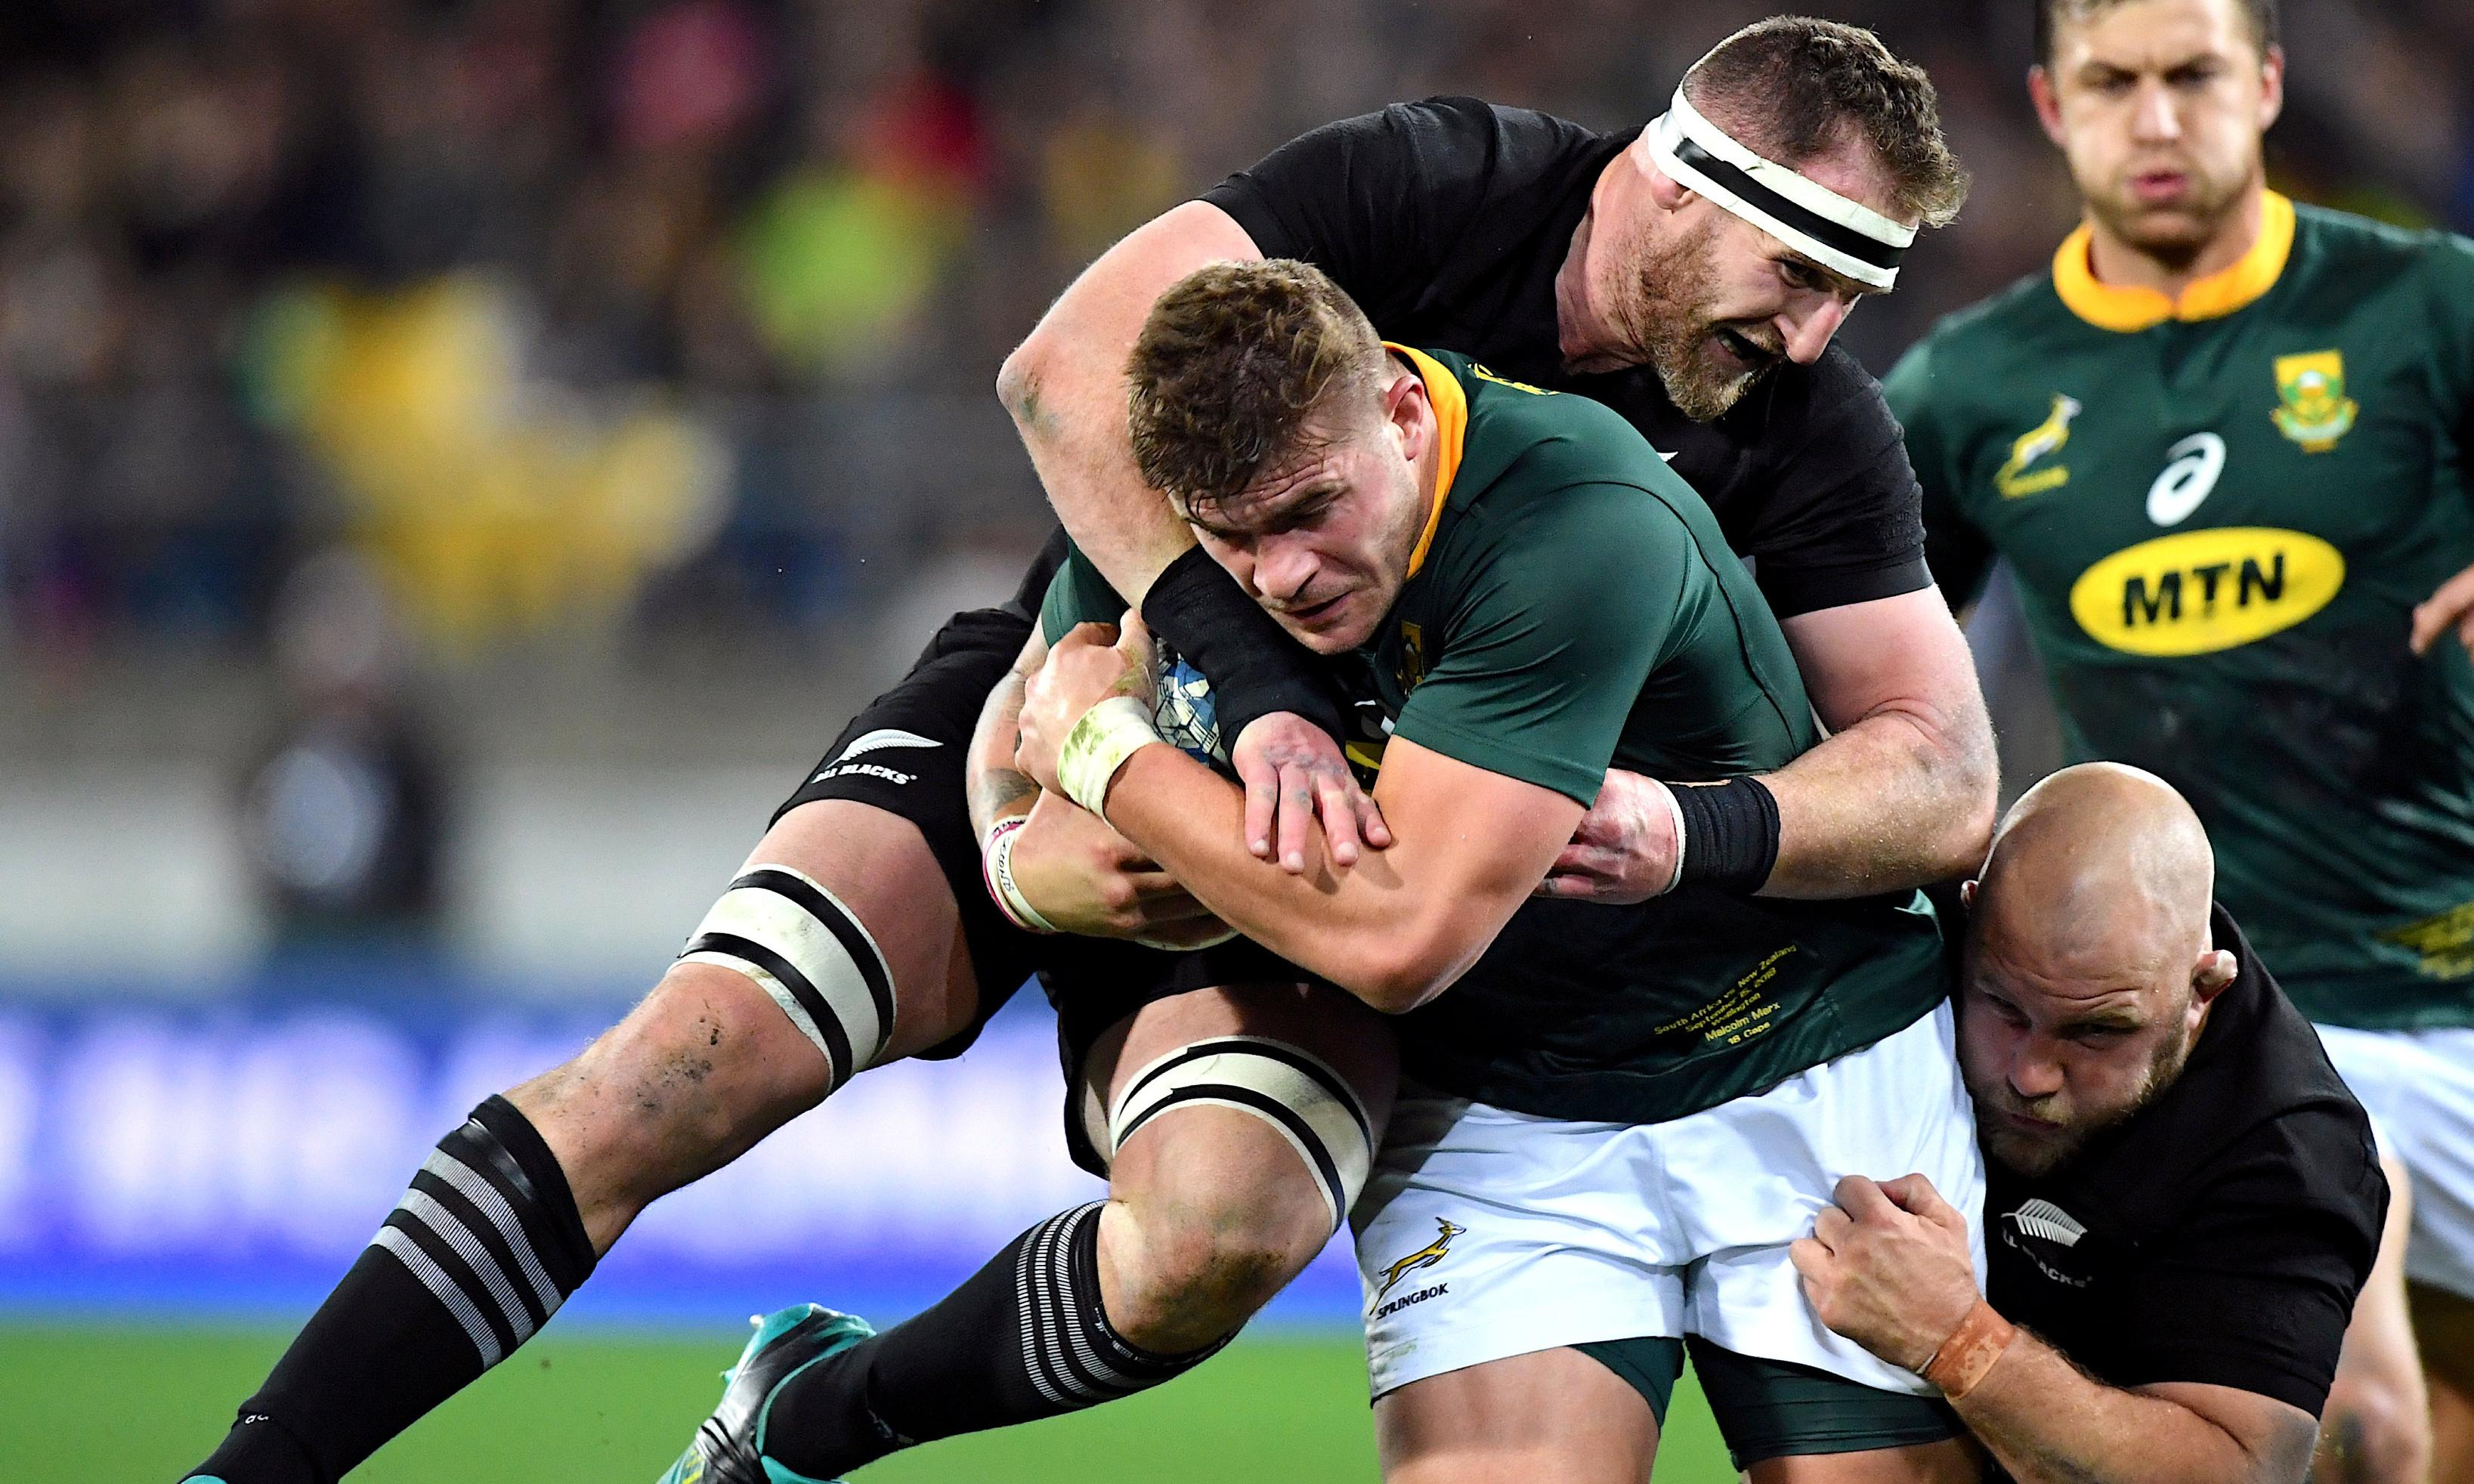 New Zealand face huge test against South Africa in World Cup opener